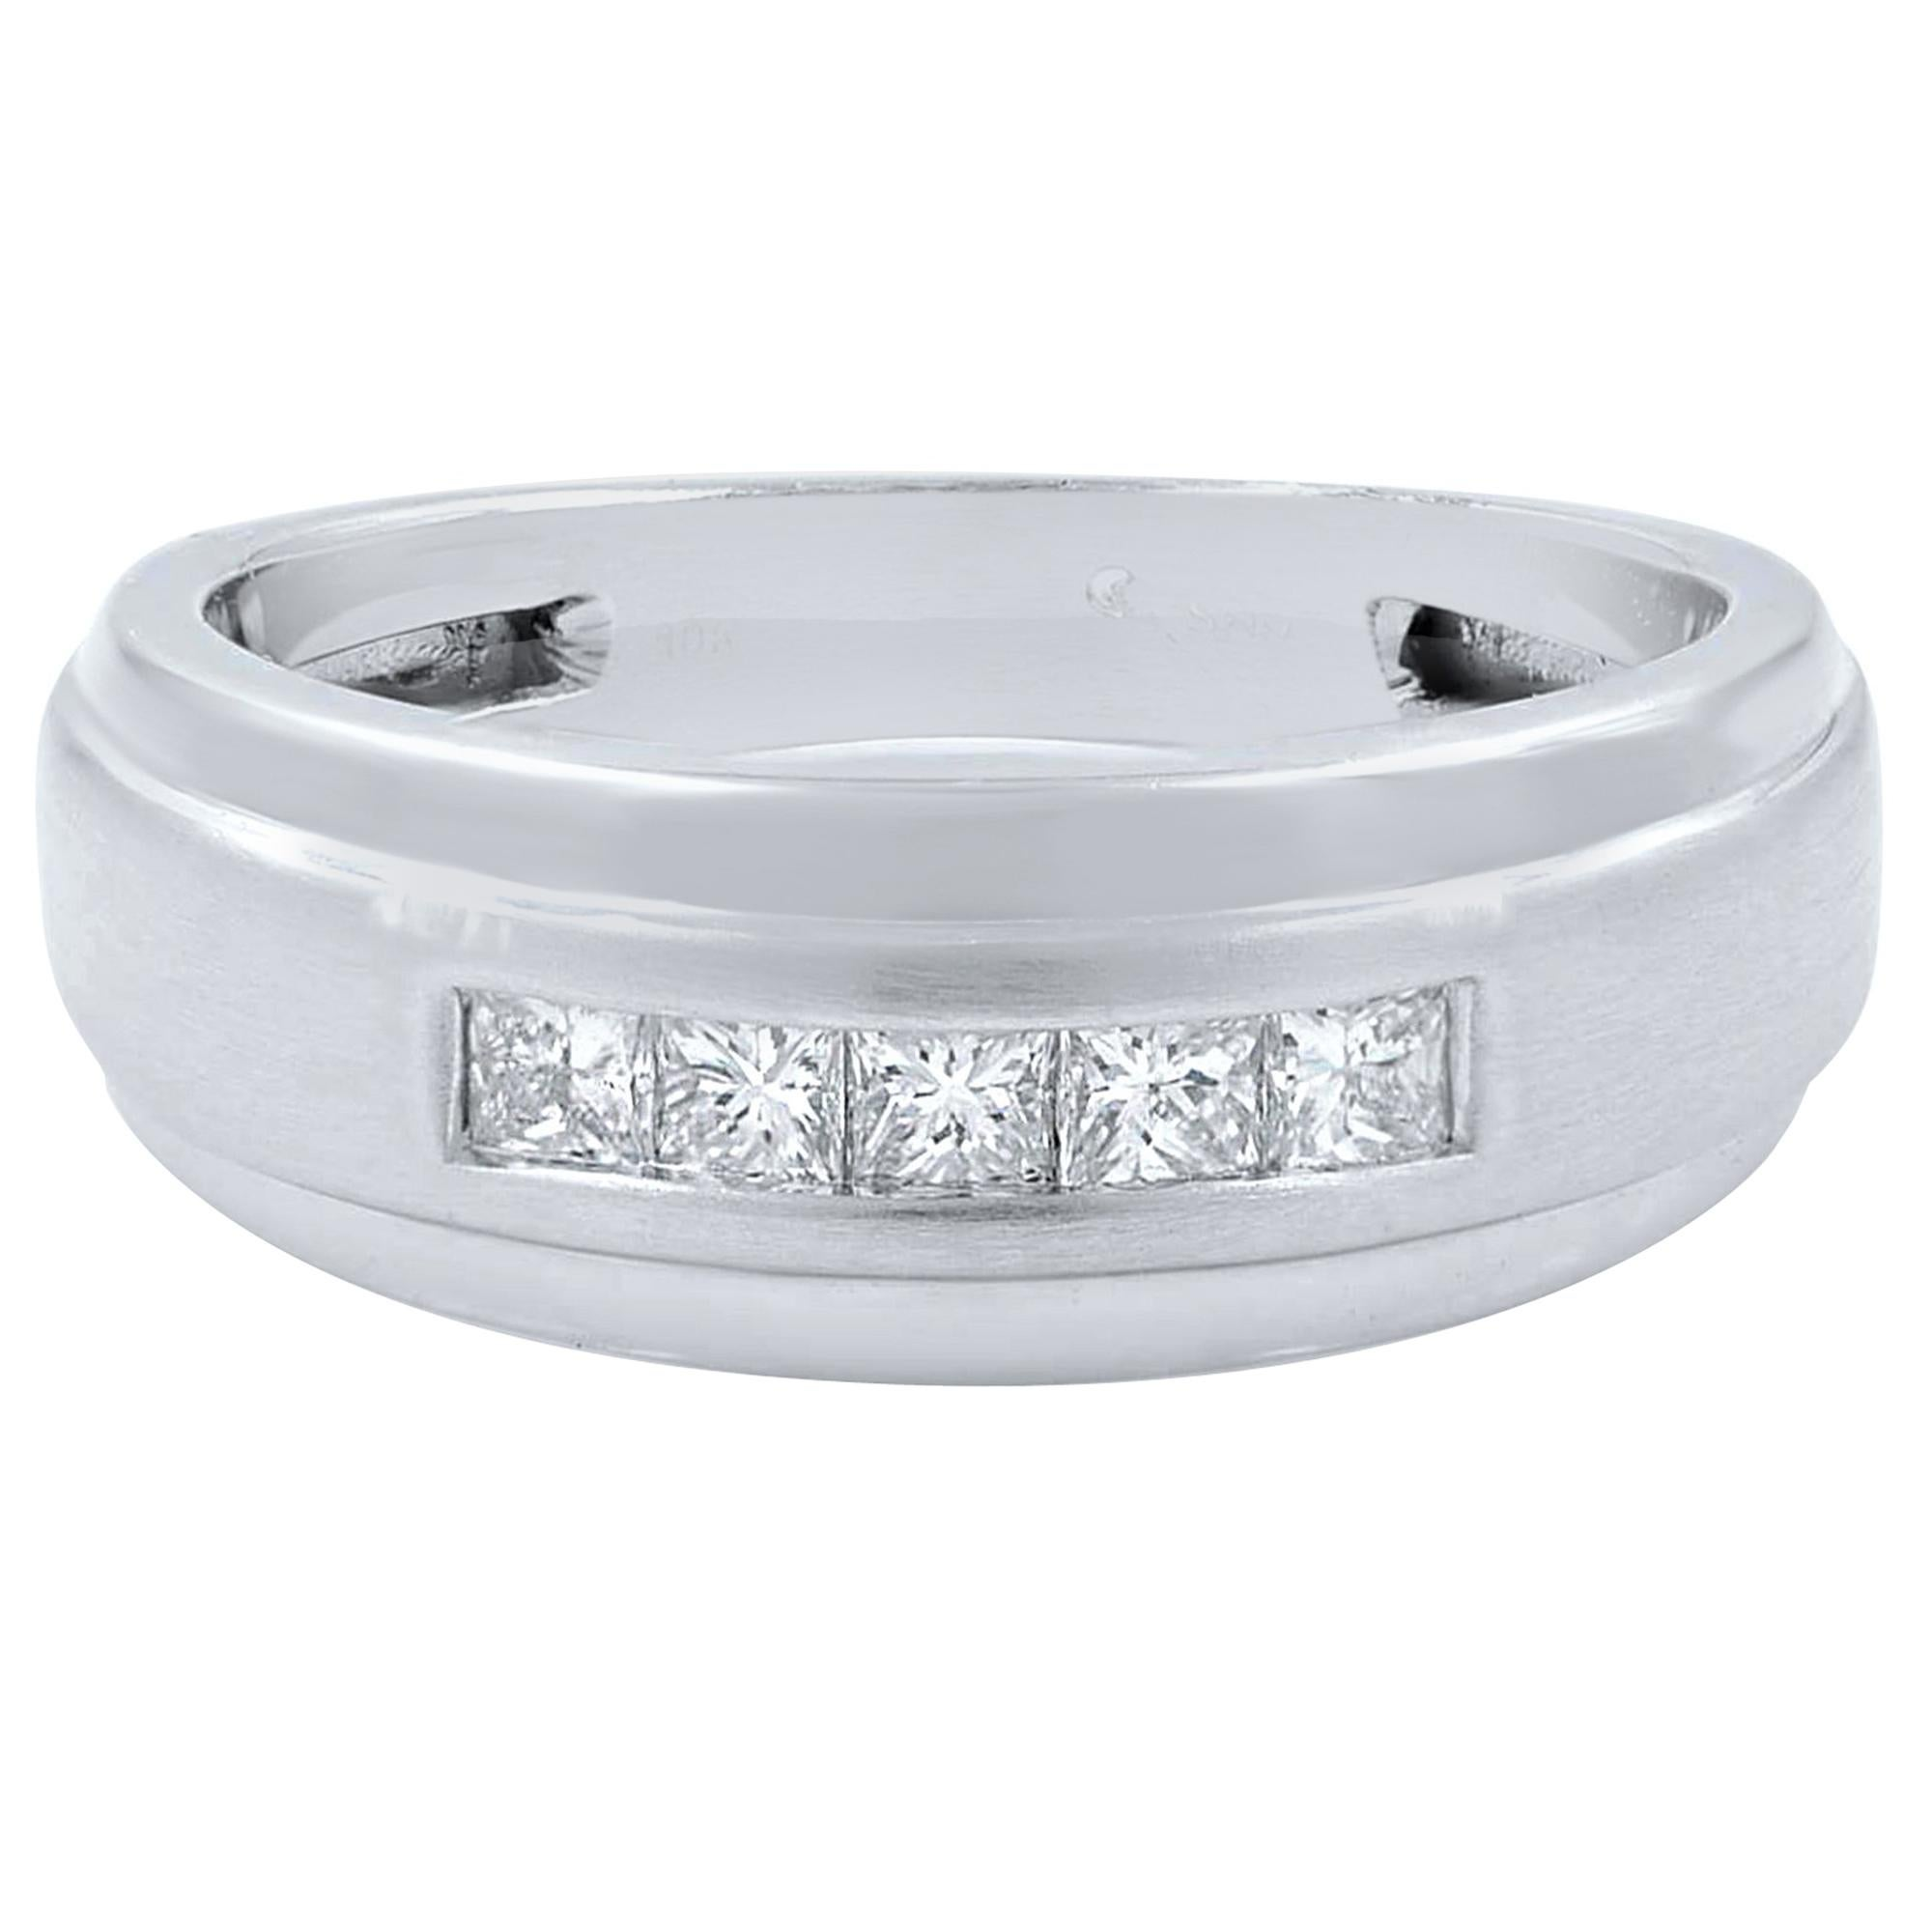 10 Karat White Gold 0.40 Carat Princess Cut Diamond Wedding Band Ring for Men's